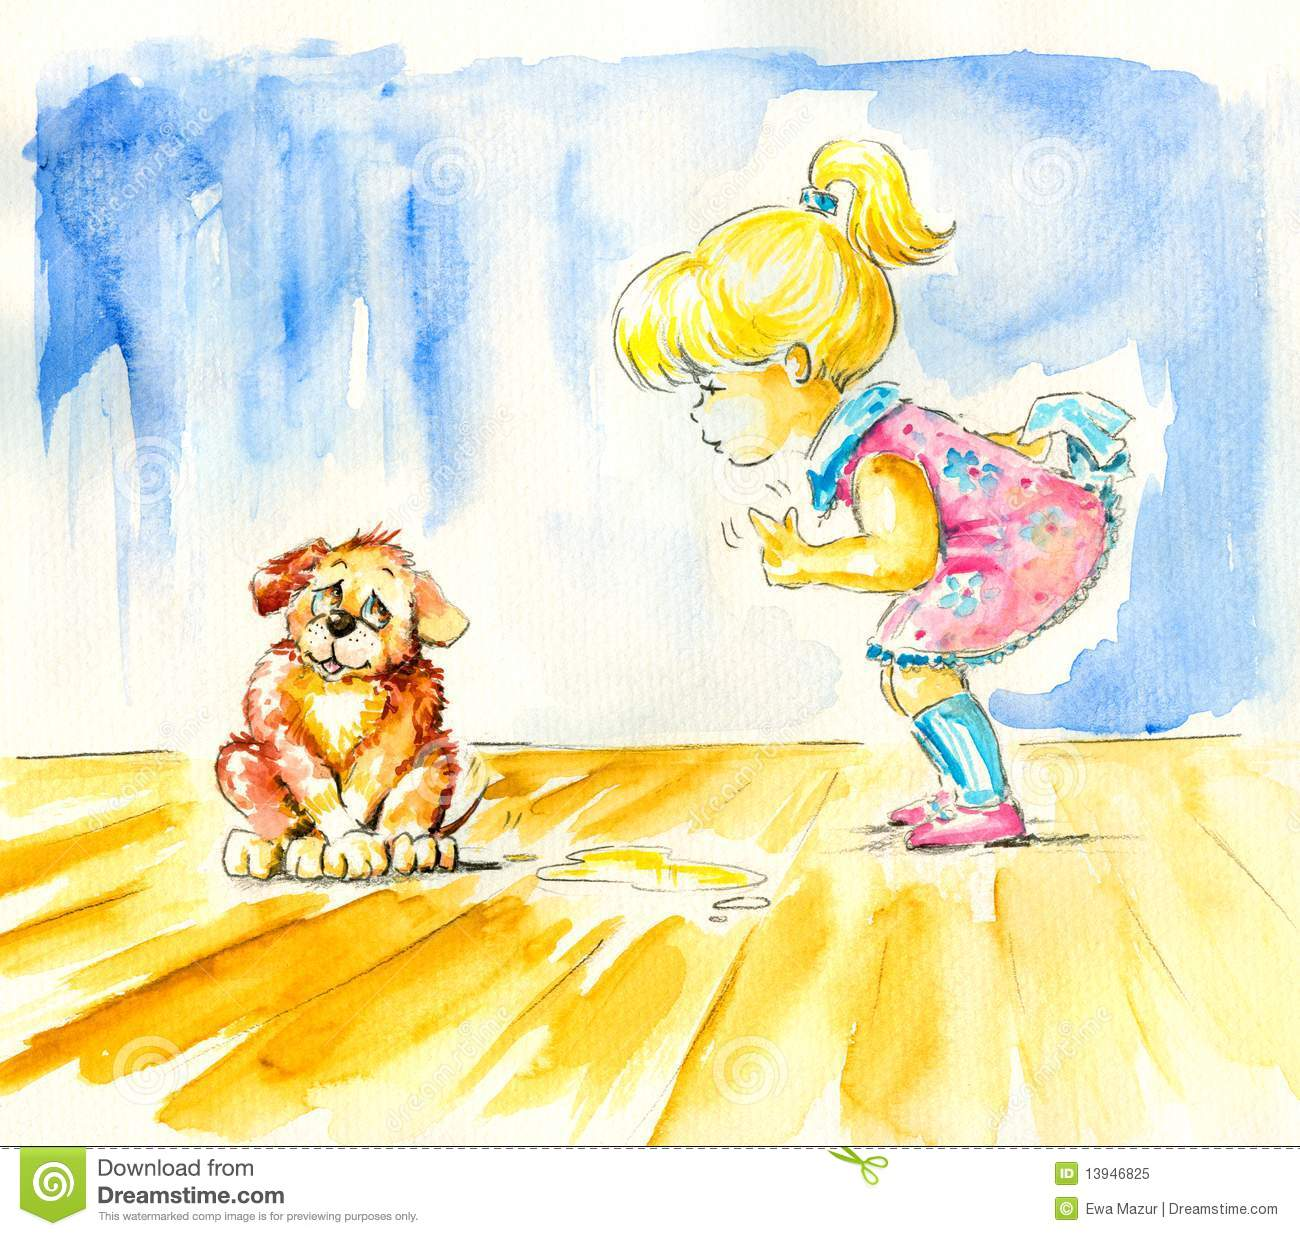 Little Houses Designs: House Training Puppy Poop Pee Royalty-Free Cartoon